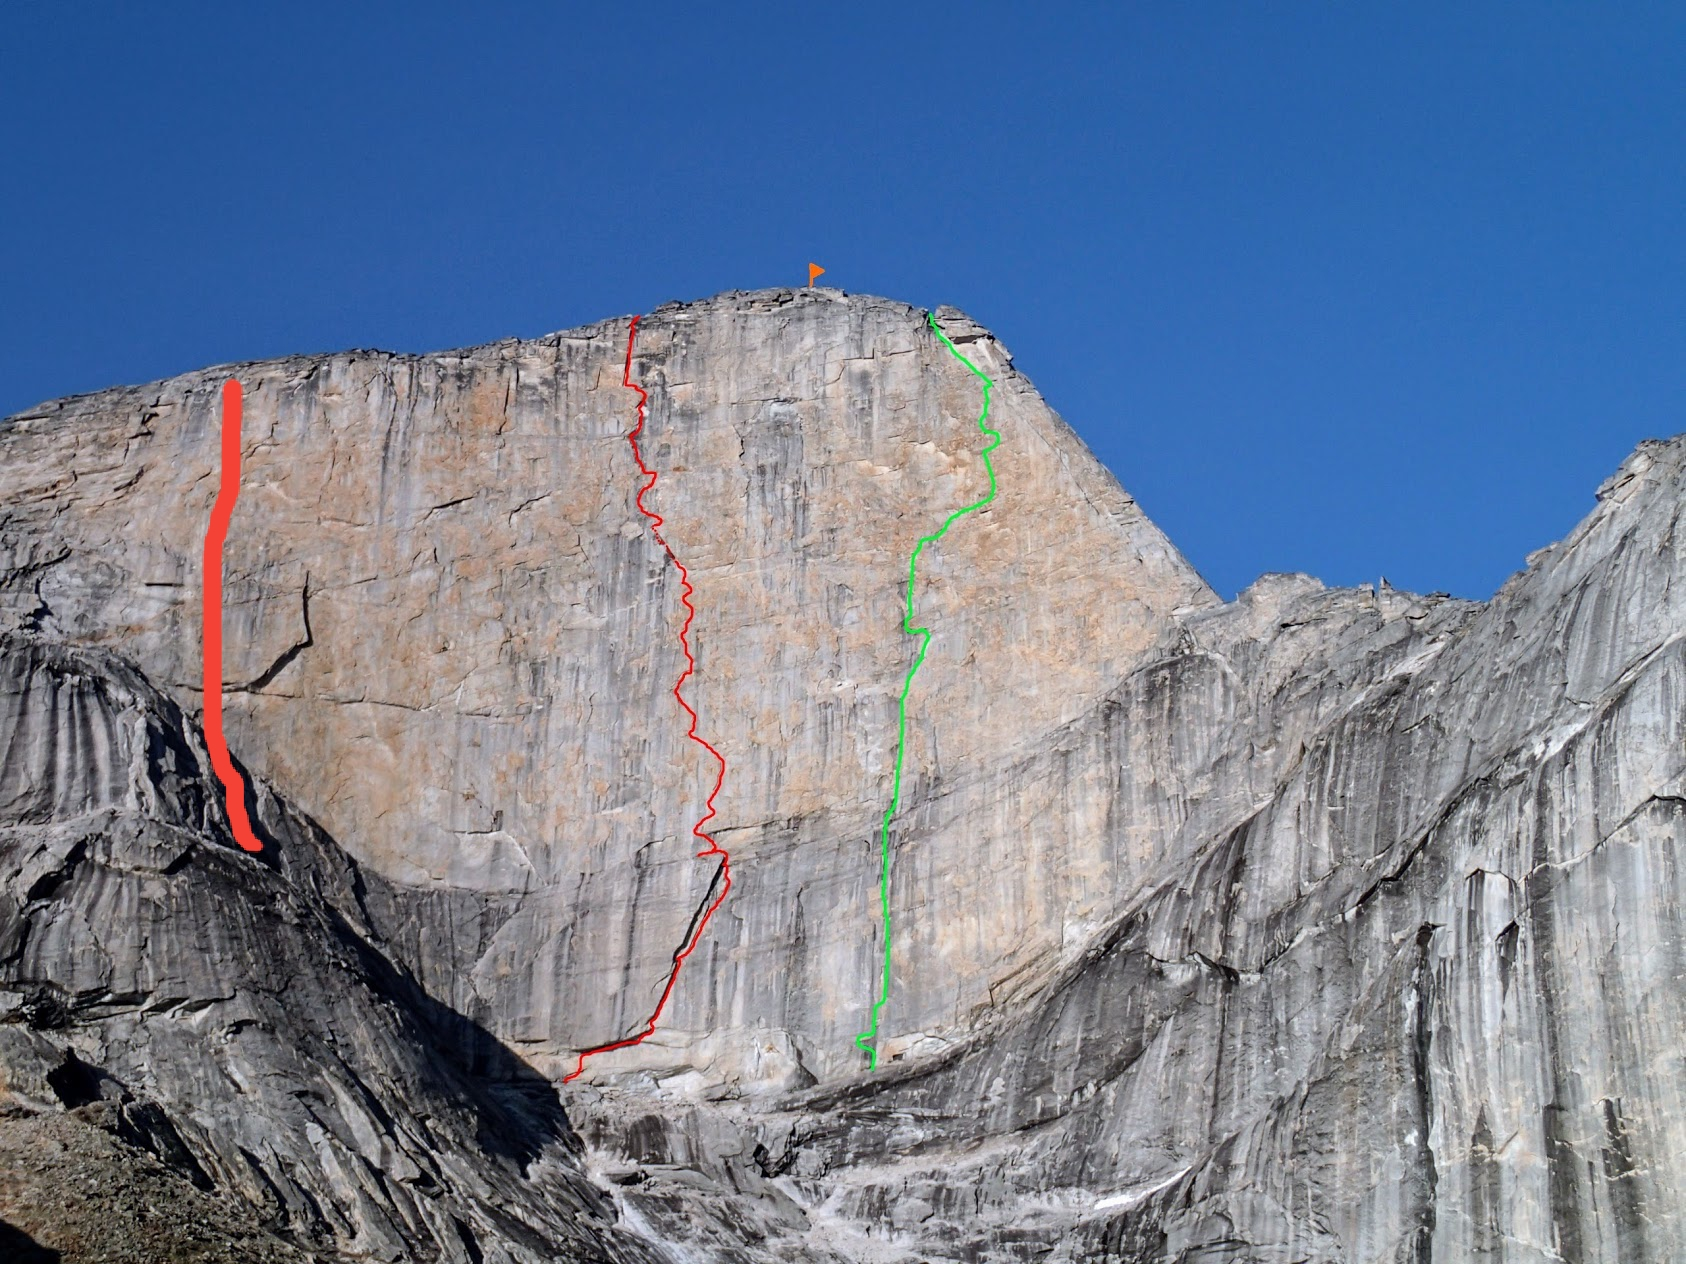 The west face of Xanadu: Golden Petals (V 5.13+ or 5.12 A0, 14 pitches) is marked in green on the right, Une pas mes (VI 5.10b A4/A4+, 11 pitches) is marked by the thin red line at center; the third route, Arctic Knight (V 5.11+, 7 pitches, ca. 1,600'), is marked in a thicker red line to the left of the previous two. [Photo] Engberg, Bain, Boning and Braasch collection